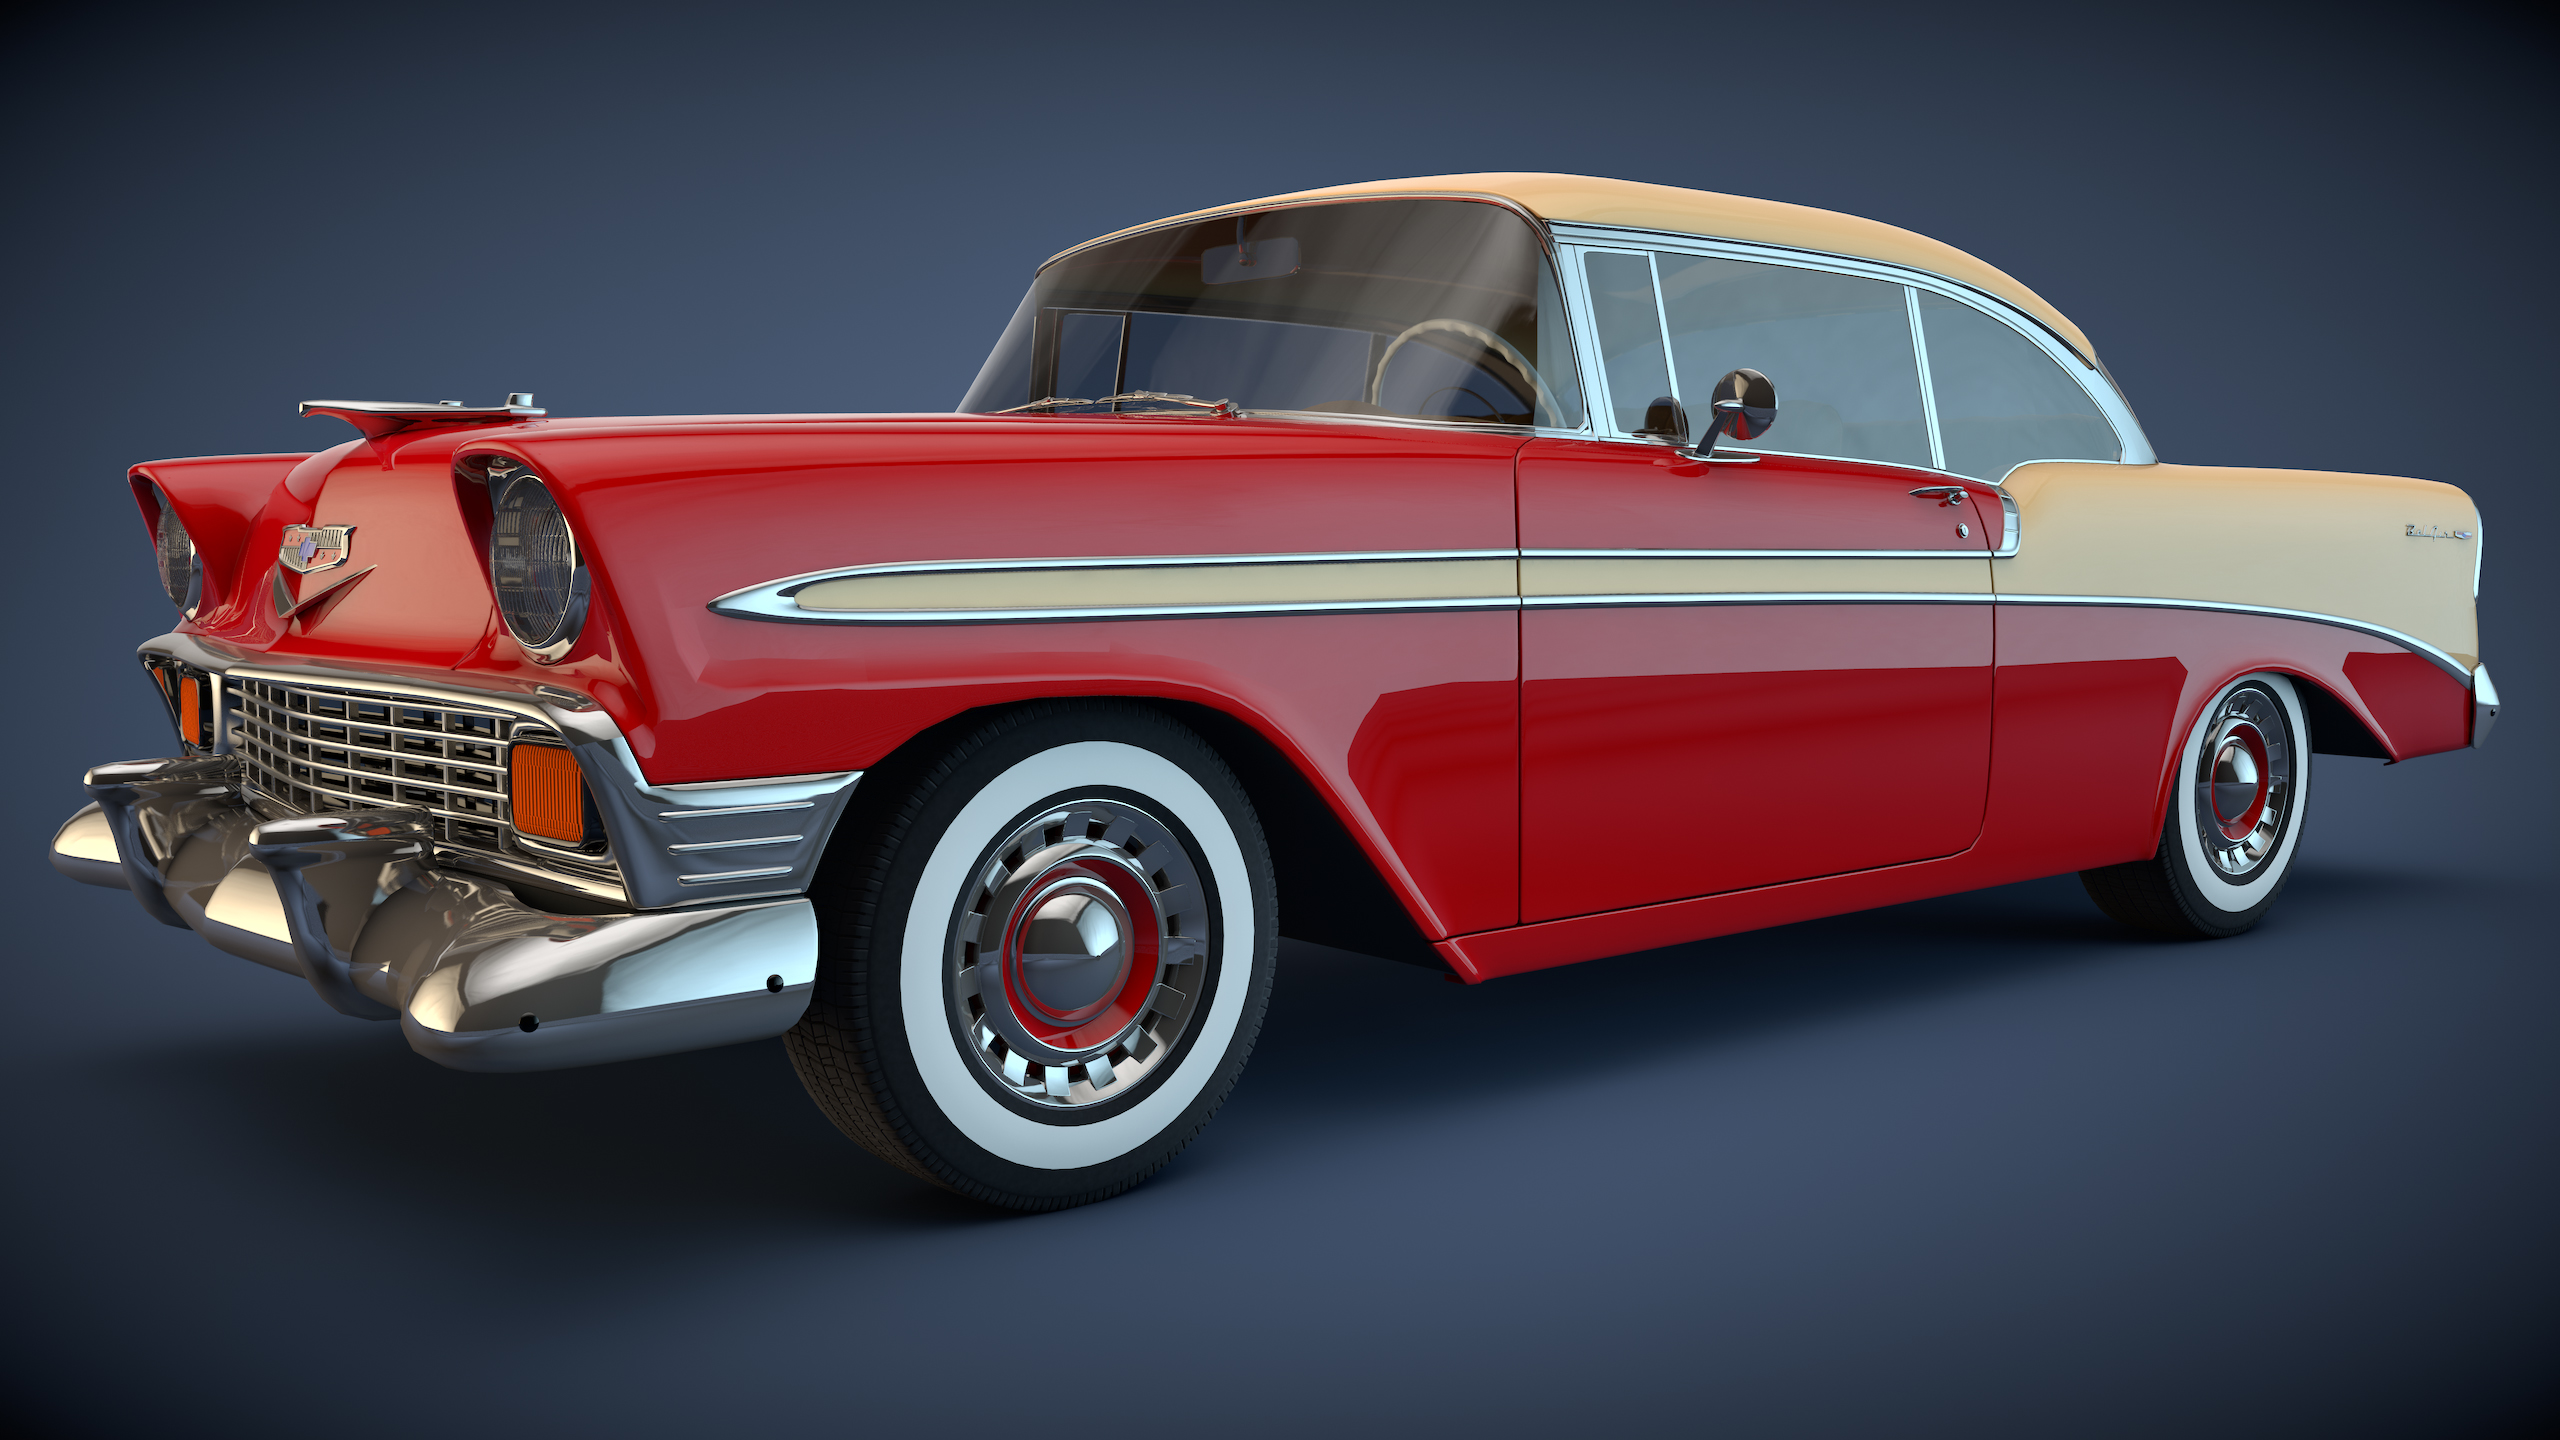 56 Chevy Wallpaper